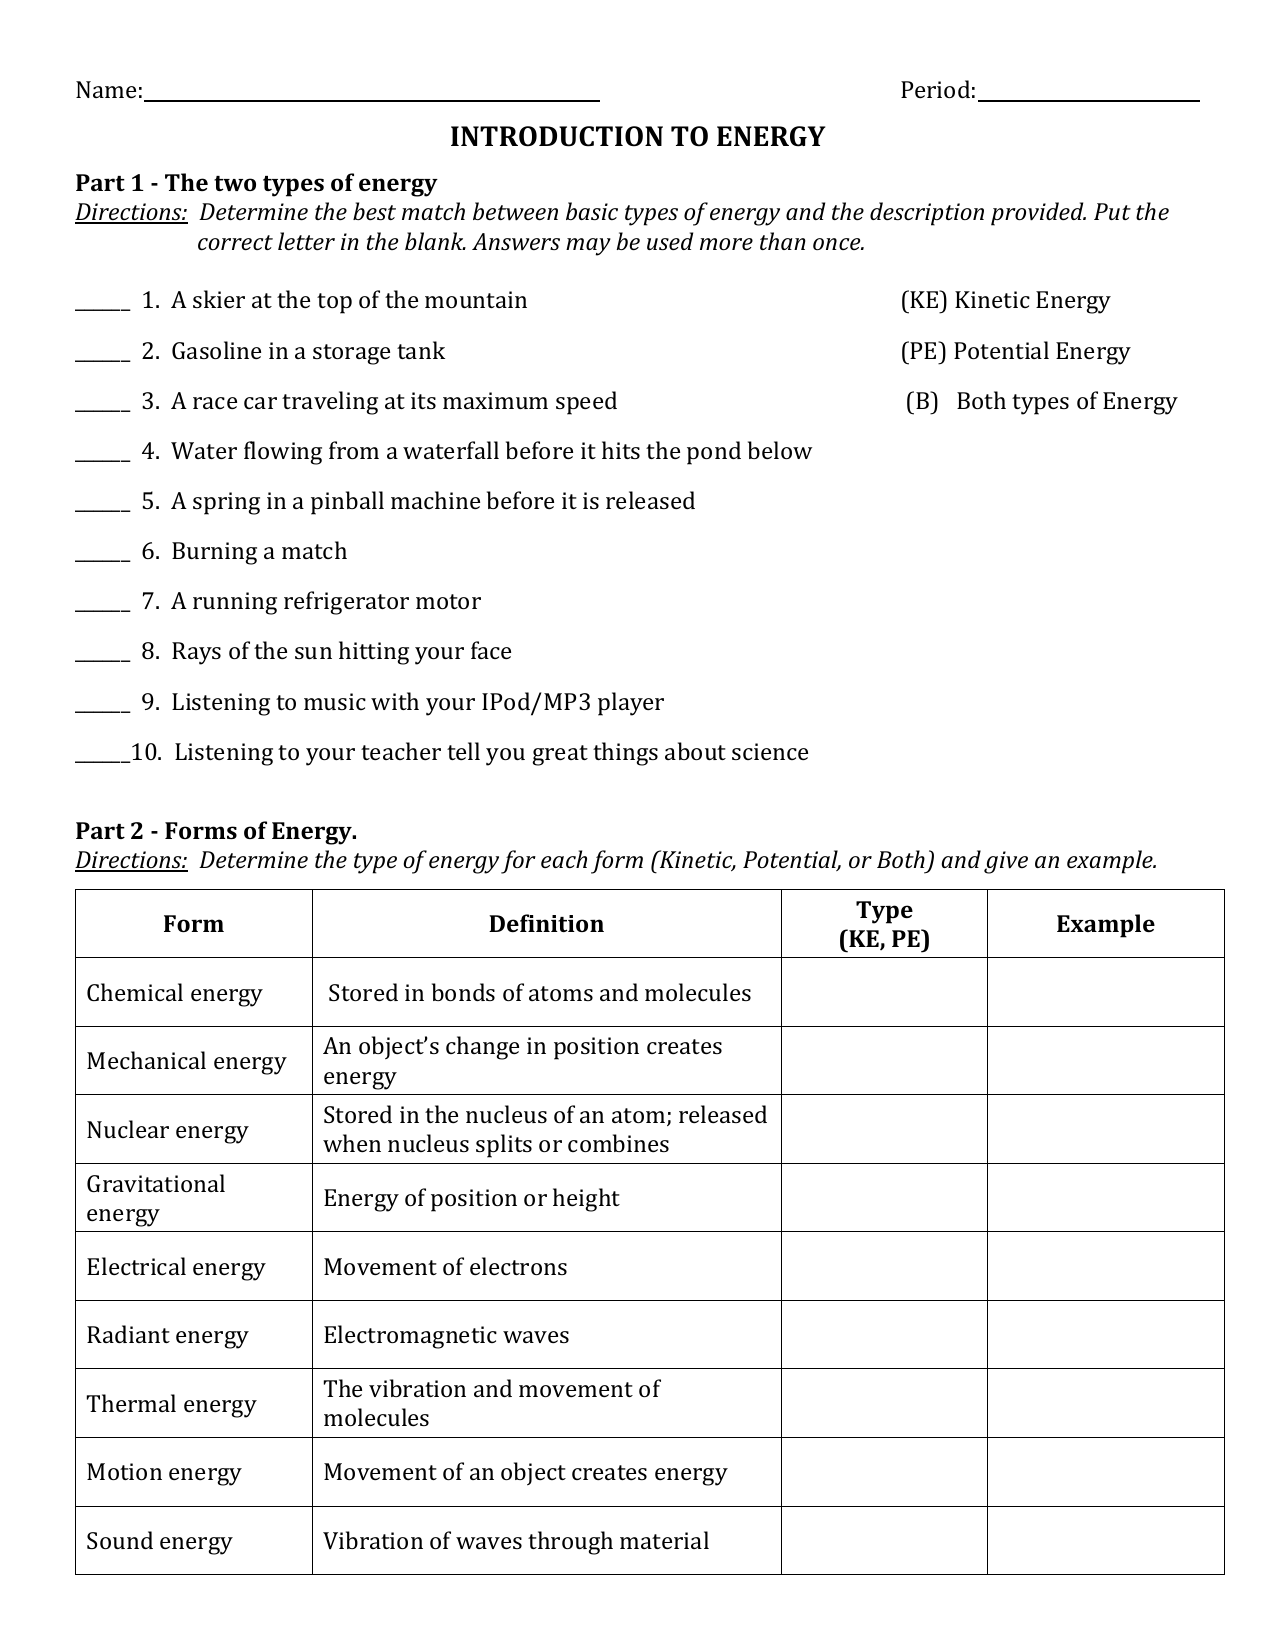 Introduction To Energy Worksheet